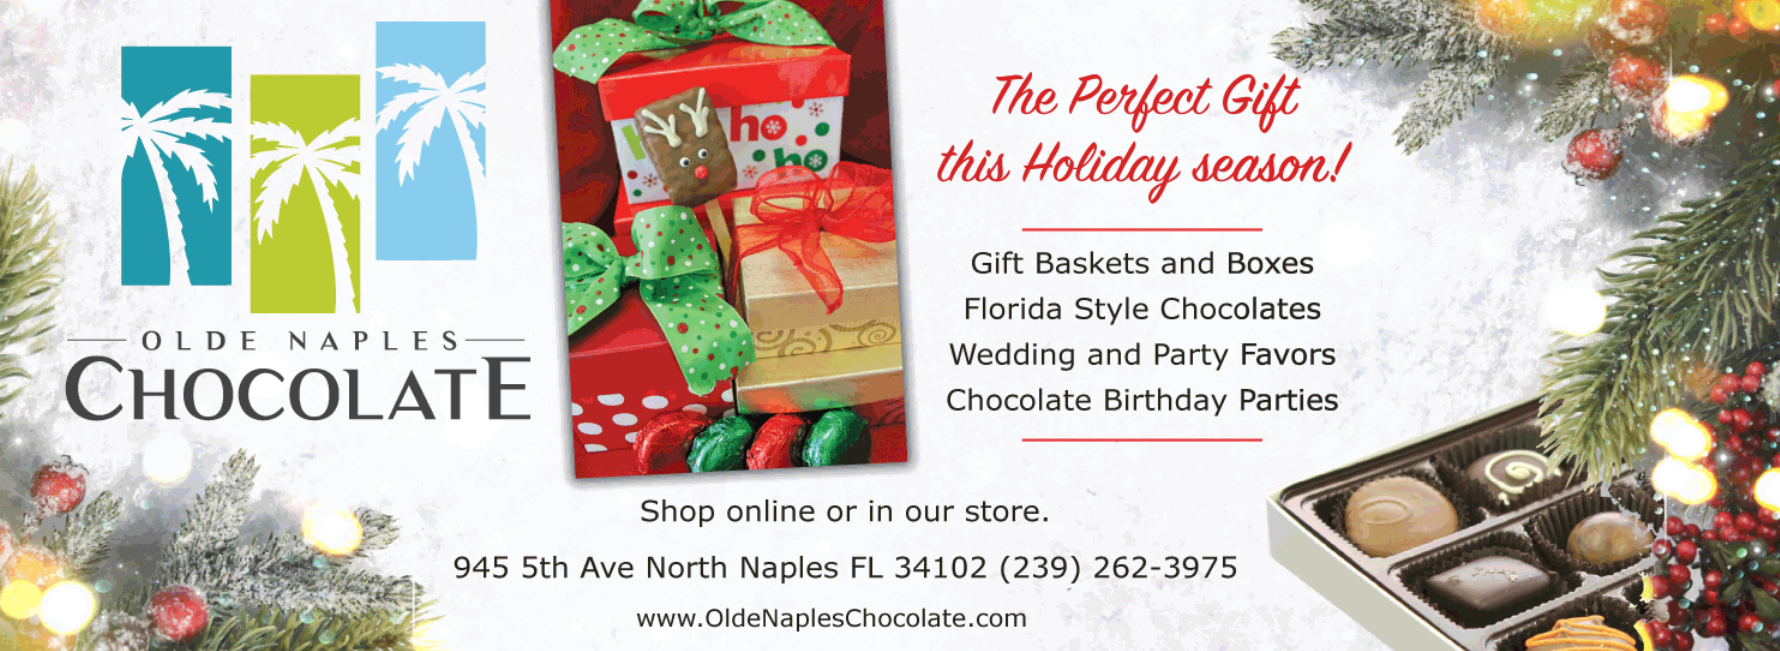 945 5th Ave North Naples FL 34102 (239) 262-3975 www.OldeNaplesChocolate.com The Per fect Gift this Hol iday season ! Gift Baskets and Boxes Florida Style ...